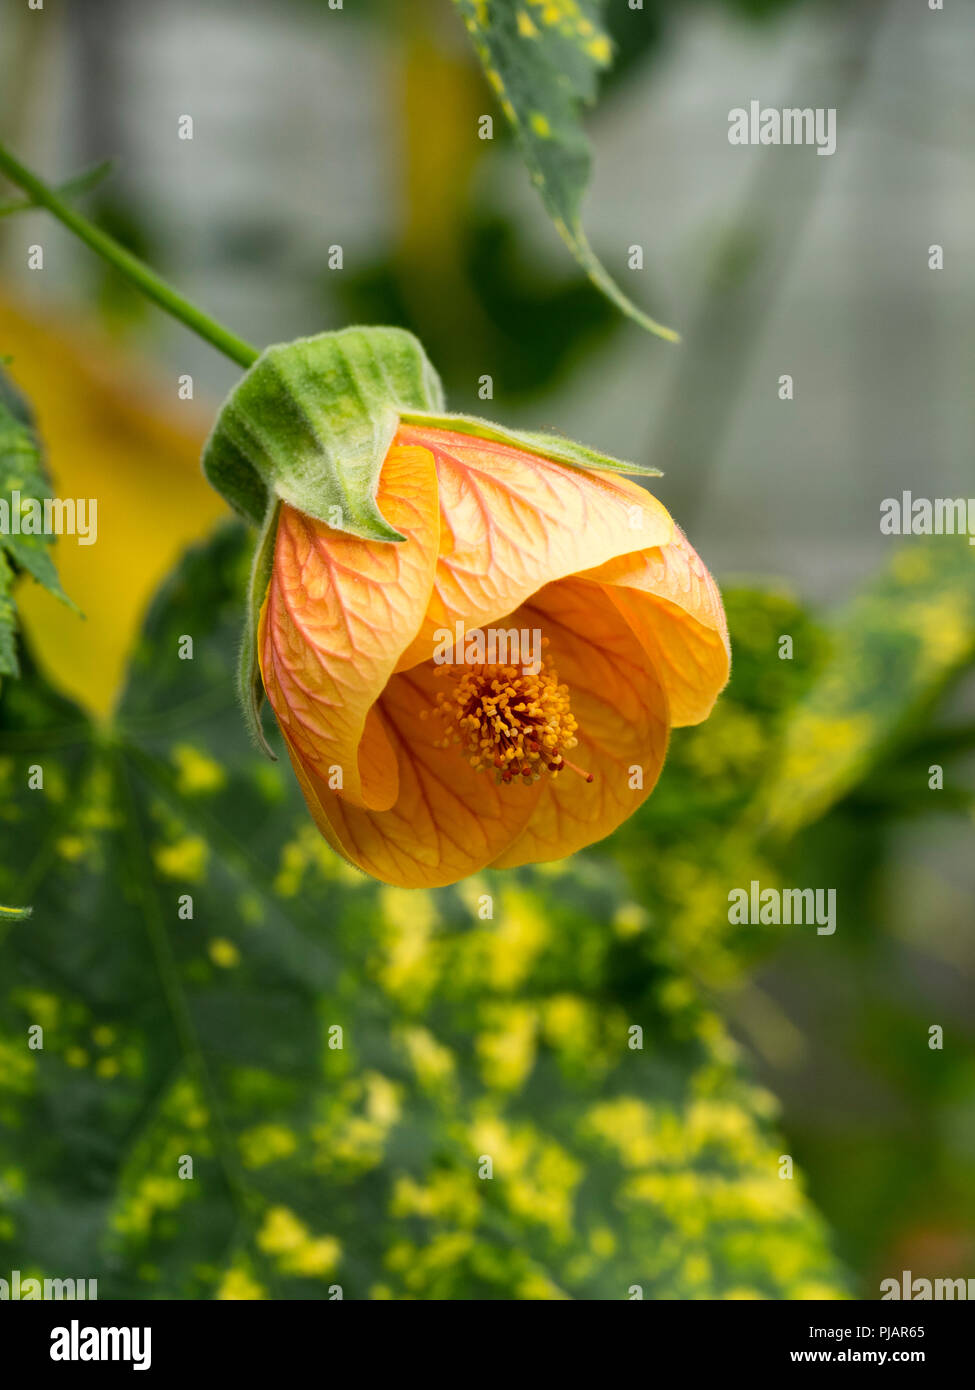 Pale orange flower and yellow spotted variegated leaves of the tender wall shrub, Abutilon pictum 'Thompsonii' - Stock Image